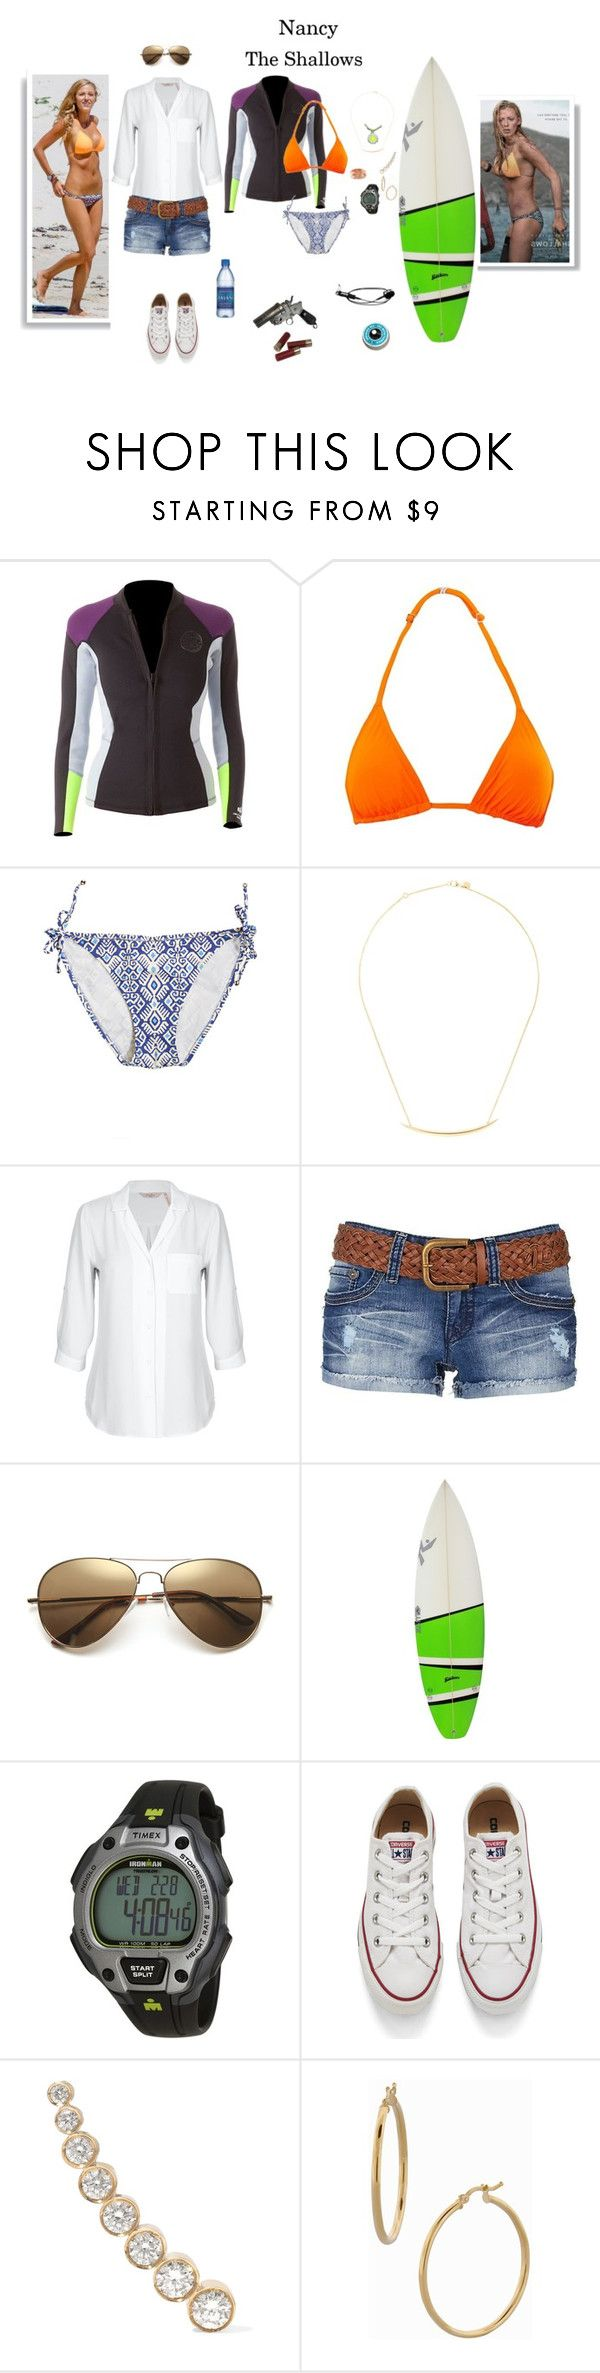 """Nancy - The Shallows"" by gone-girl ❤ liked on Polyvore featuring Rip Curl, Orlebar Brown, Calypso Private Label, Shaun Leane, YMI, Timex, Converse, Sophie Bille Brahe, Bony Levy and TheShallows"